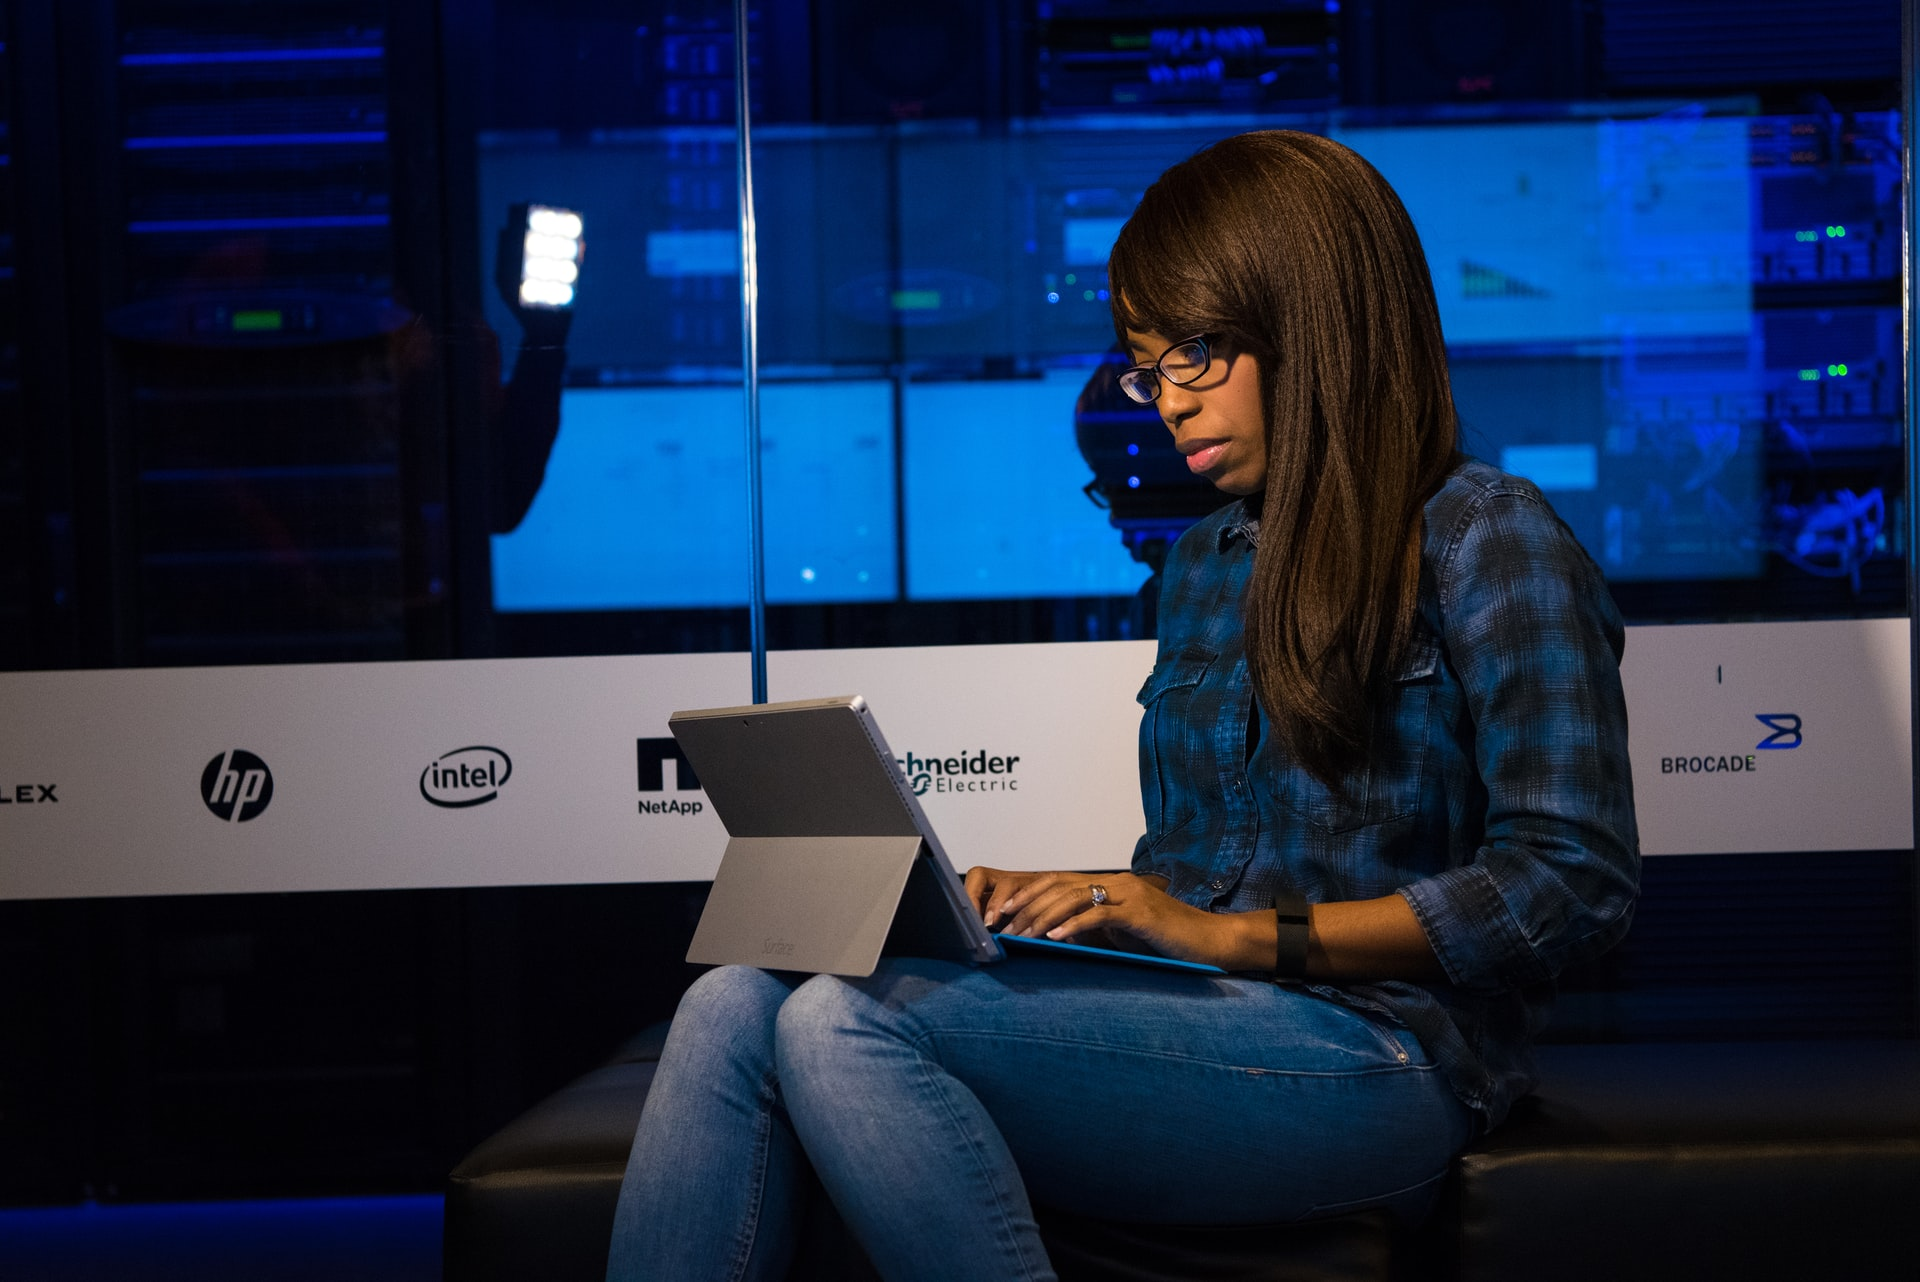 Woman in blue and black plaid using a tablet.